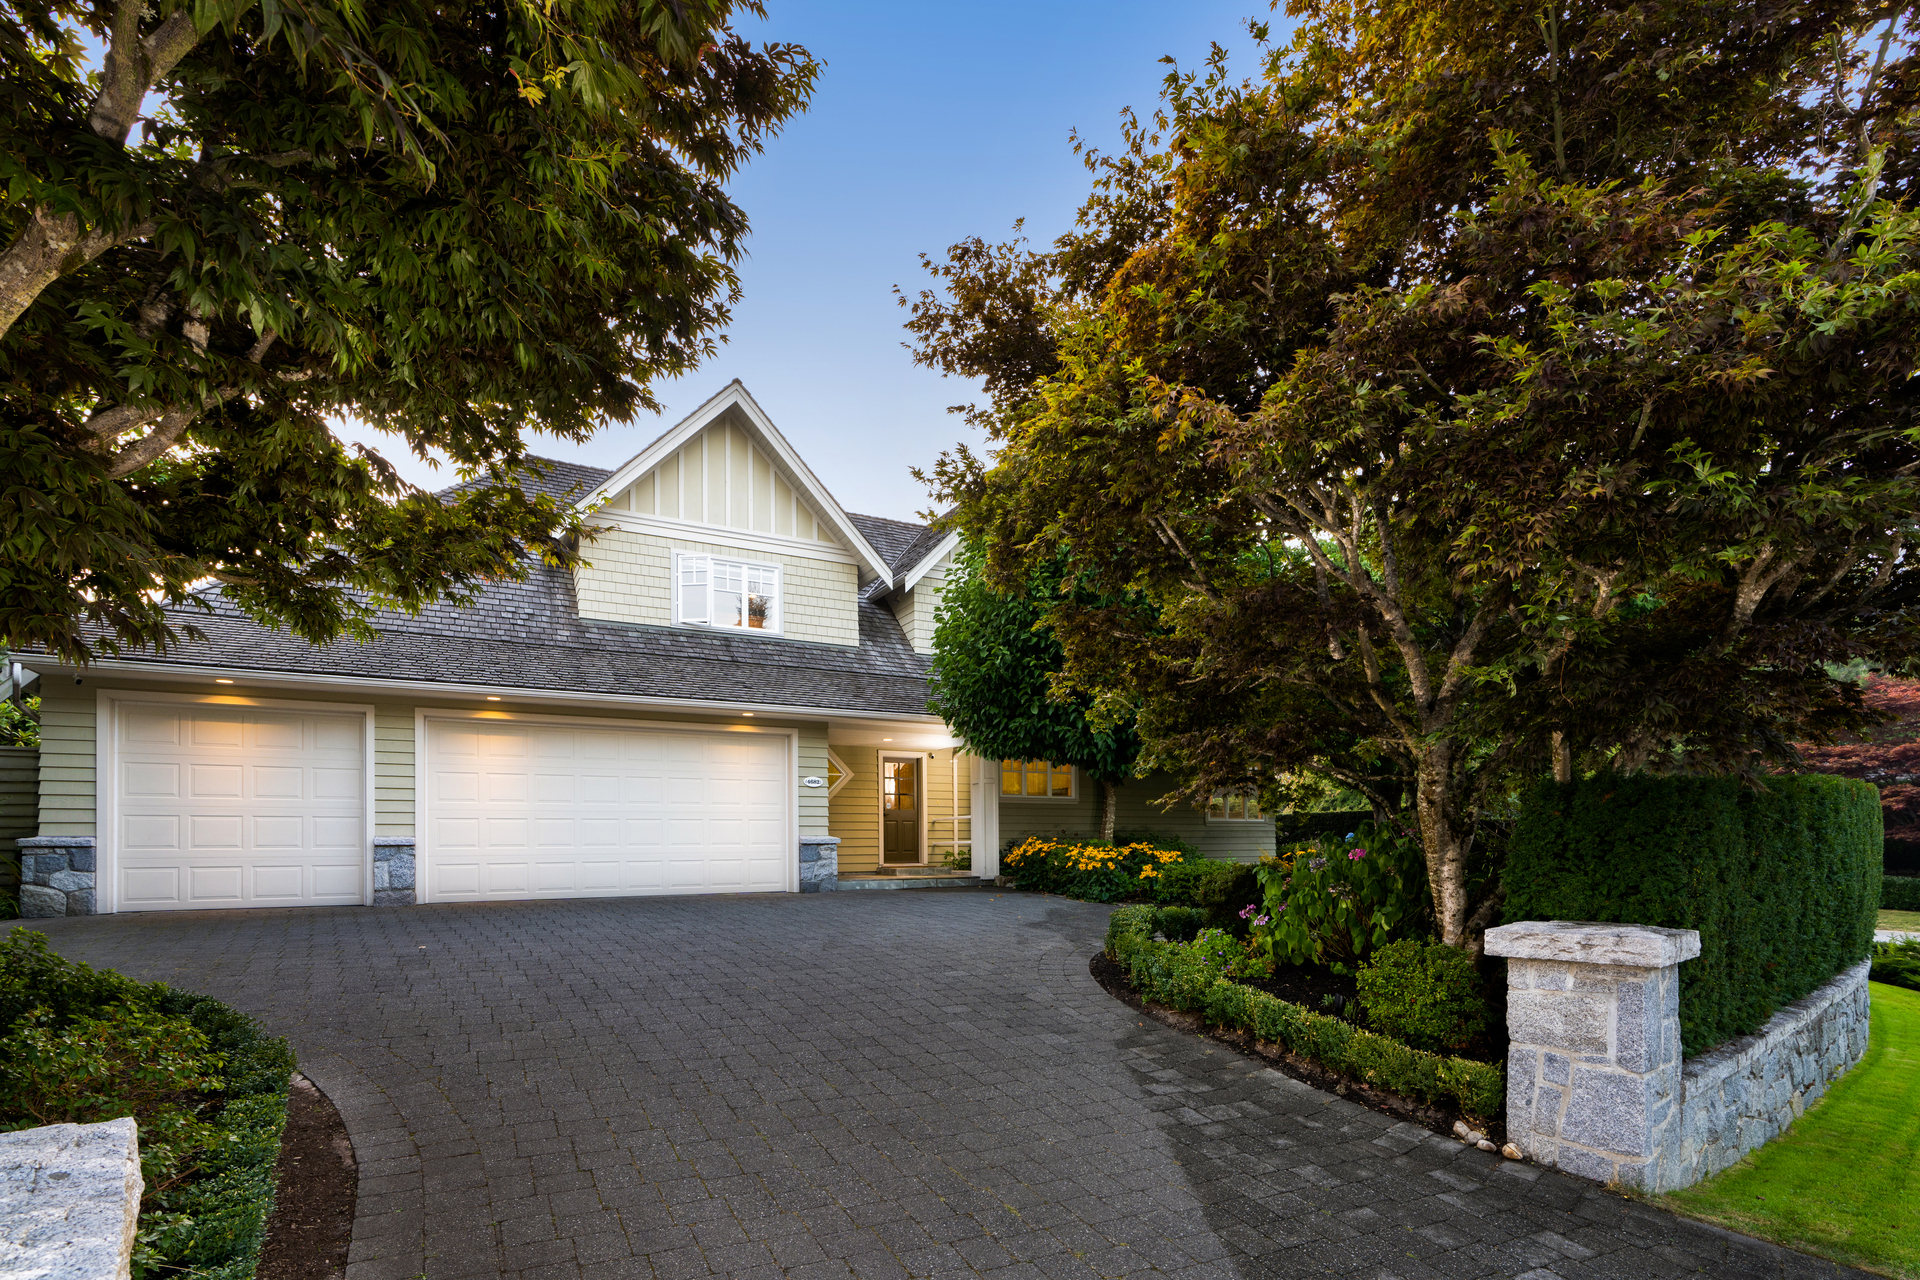 Driveway at 4682 Decourcy Court, Caulfeild, West Vancouver